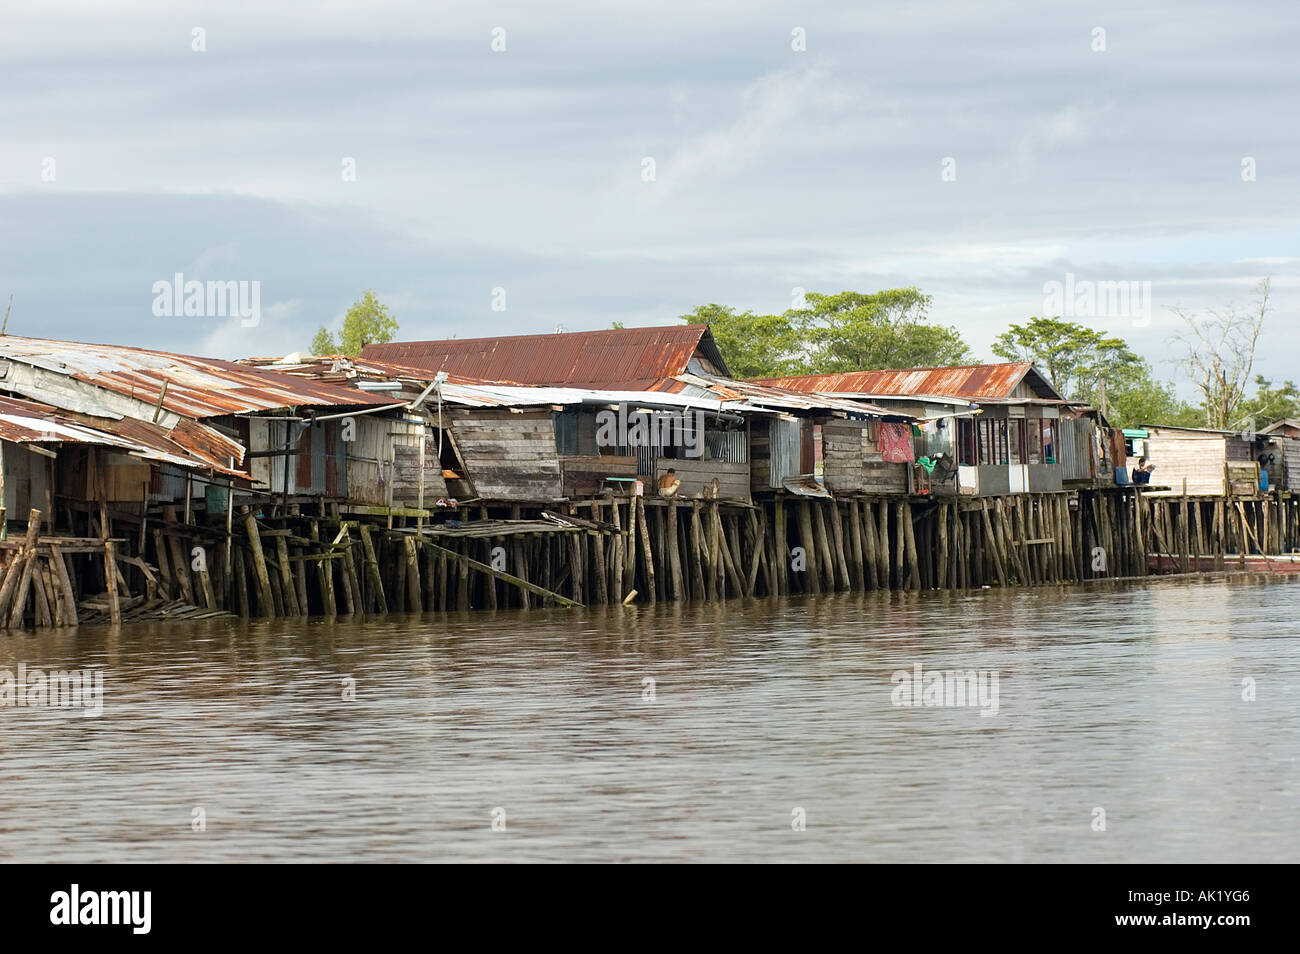 Agats town, enterance port to Irian Jaya, Indonesia. - Stock Image